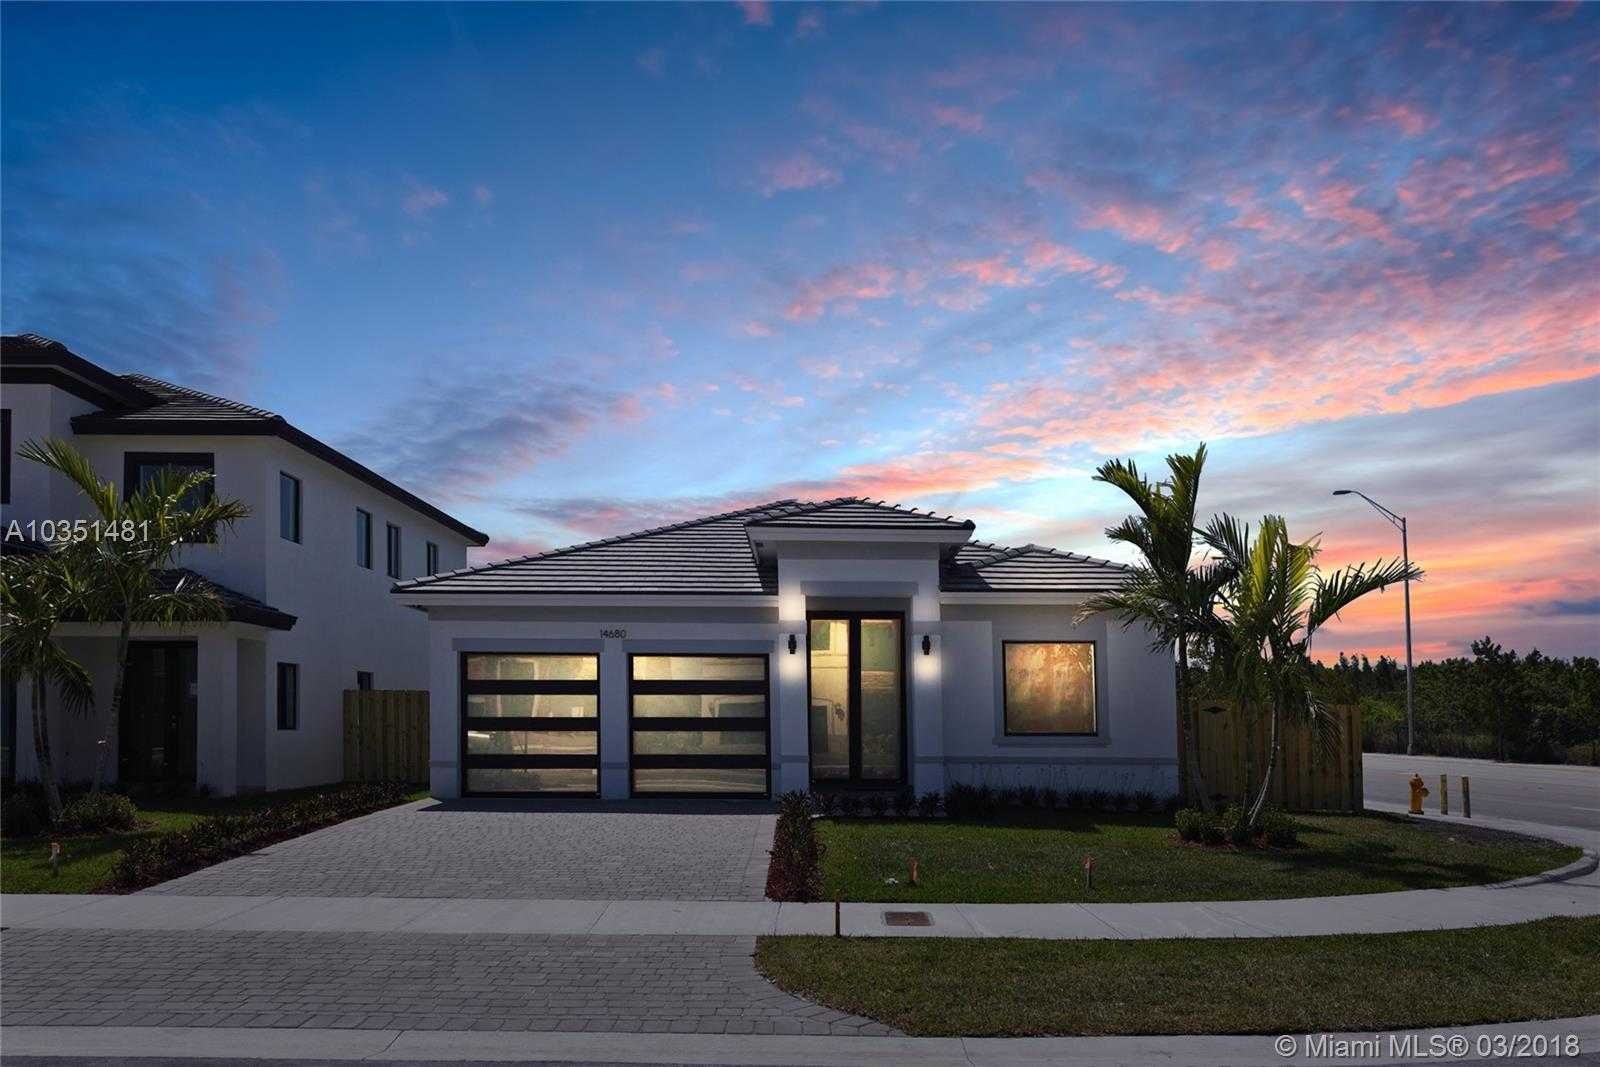 $550,000 - 4Br/3Ba -  for Sale in J G Heads Farms Sub, Unincorporated Dade County